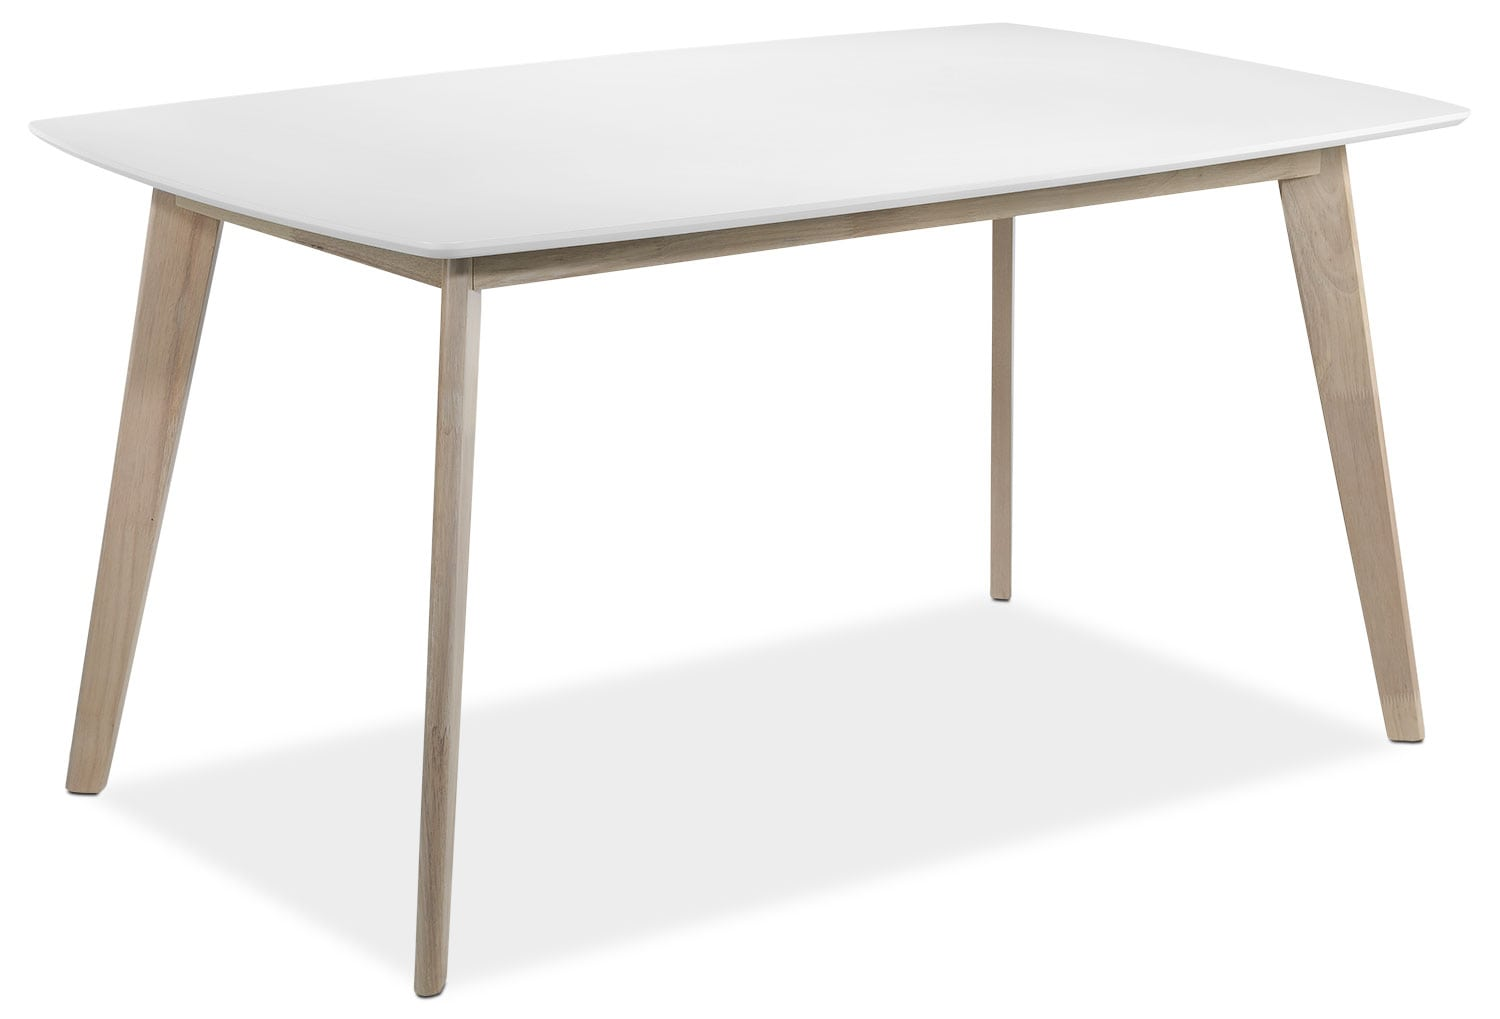 Casual Dining Room Furniture - Vivien Dining Table - White